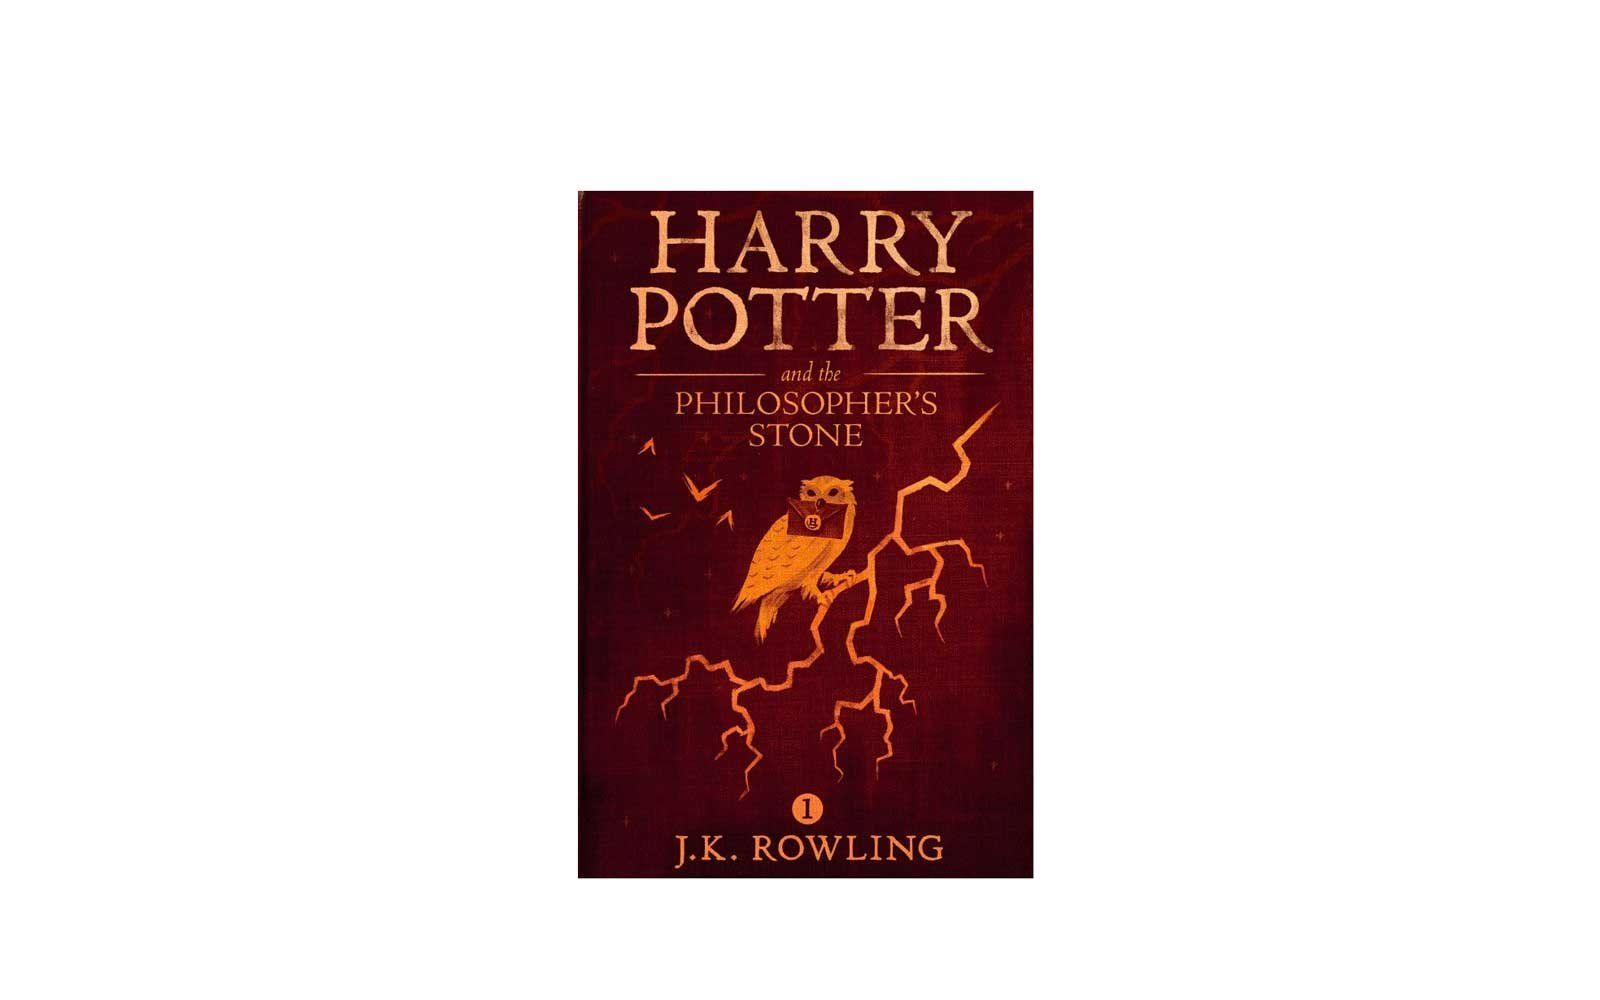 20 most popular Kindle books 2017 Harry Potter Philosophers Stone